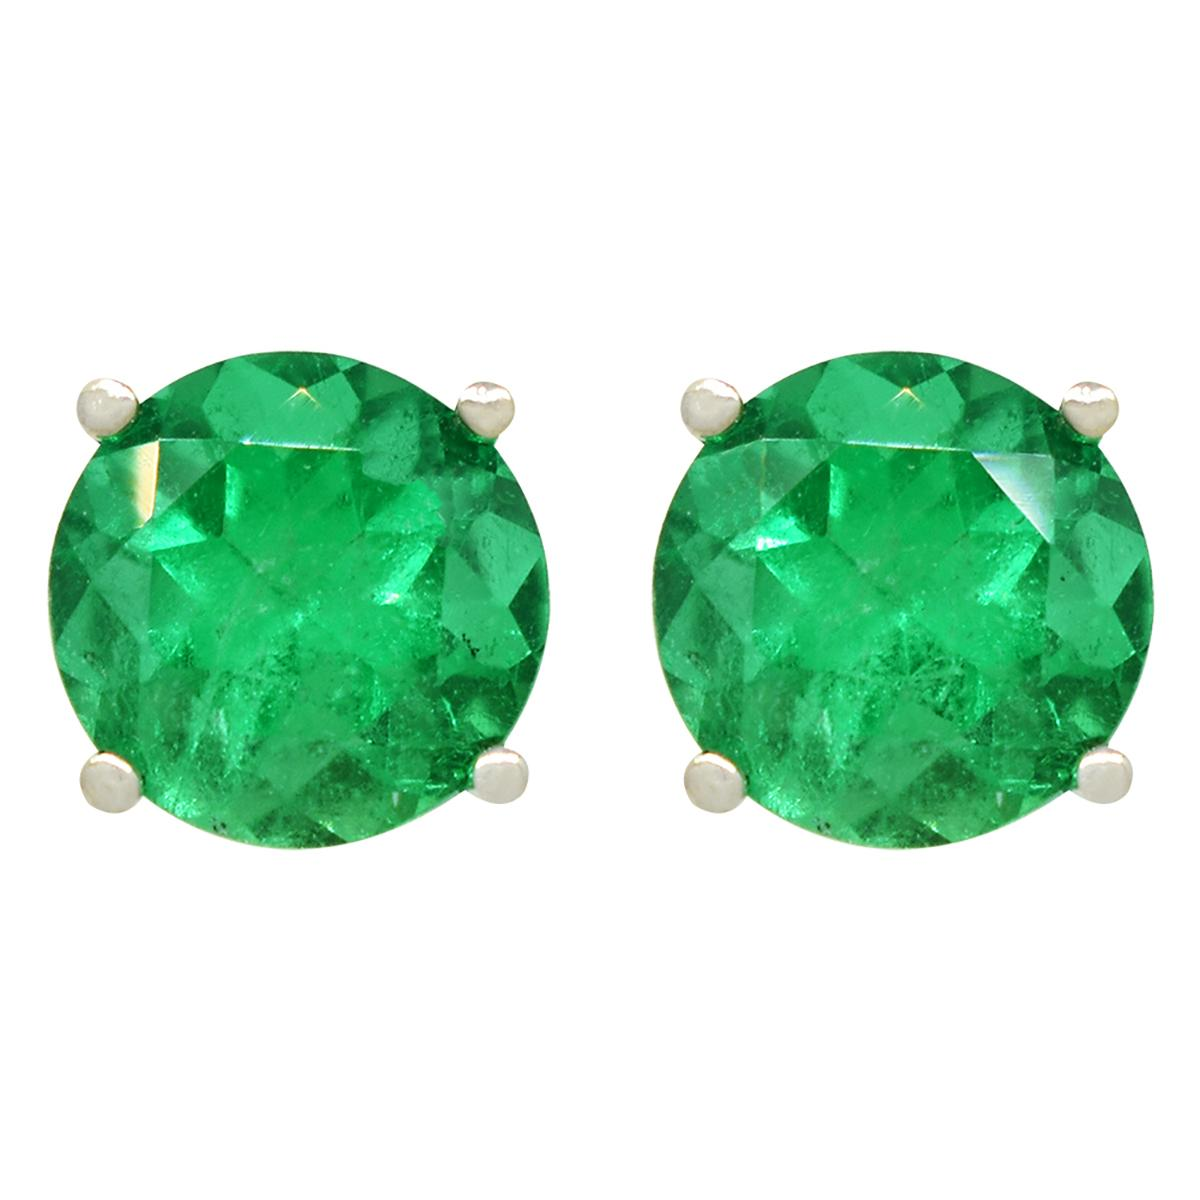 big-round-emeralds-stud-earrings-in-18k-white-gold-classic-prong-setting